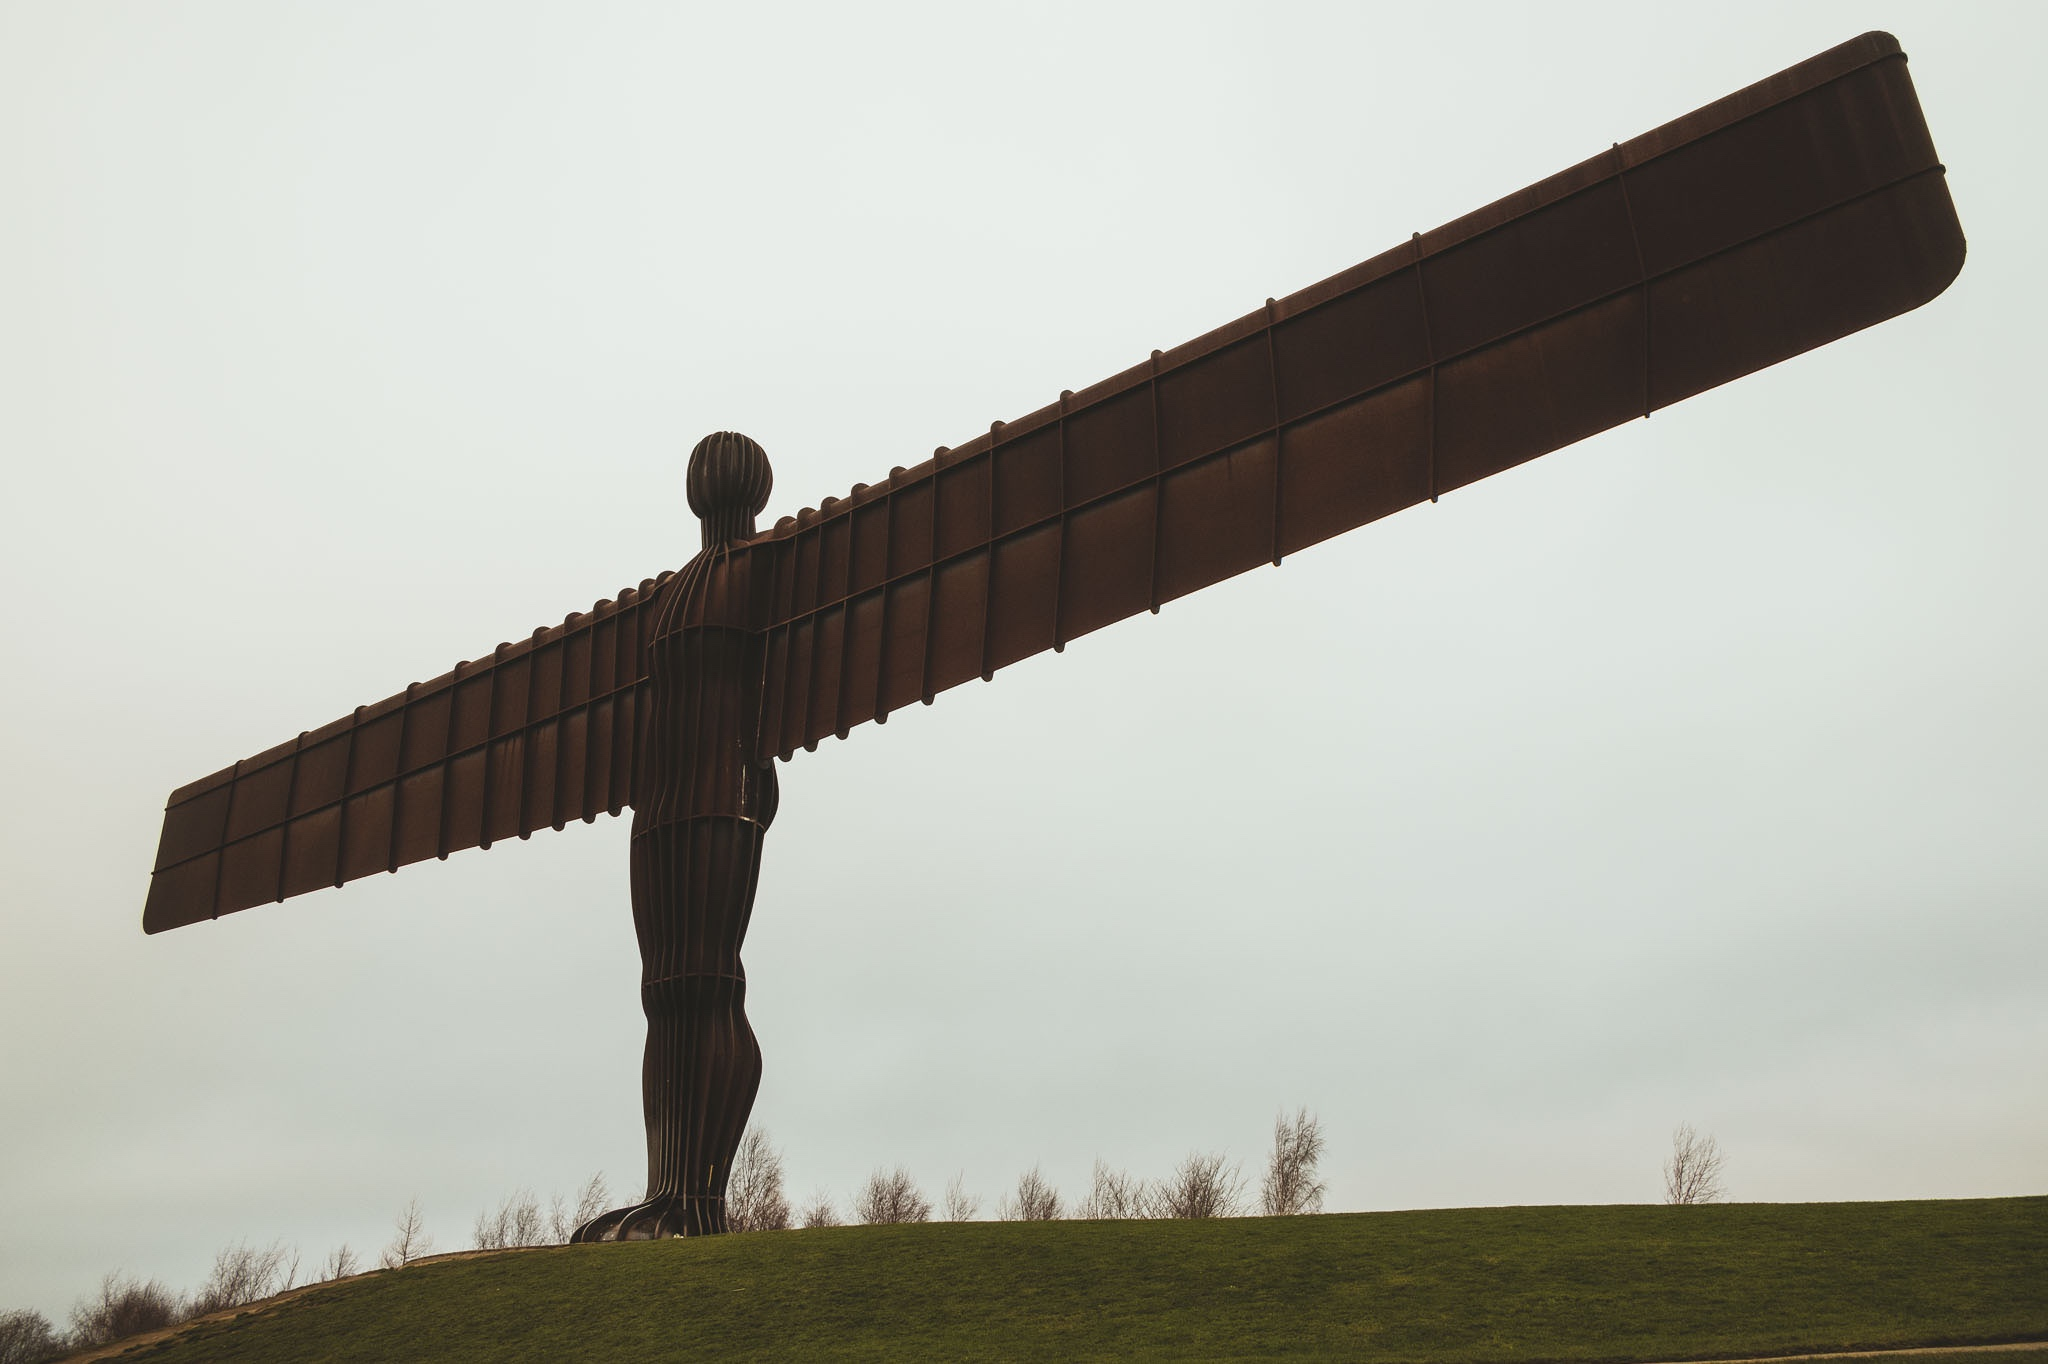 The Angel of the North in Newcastle on a cold winter day